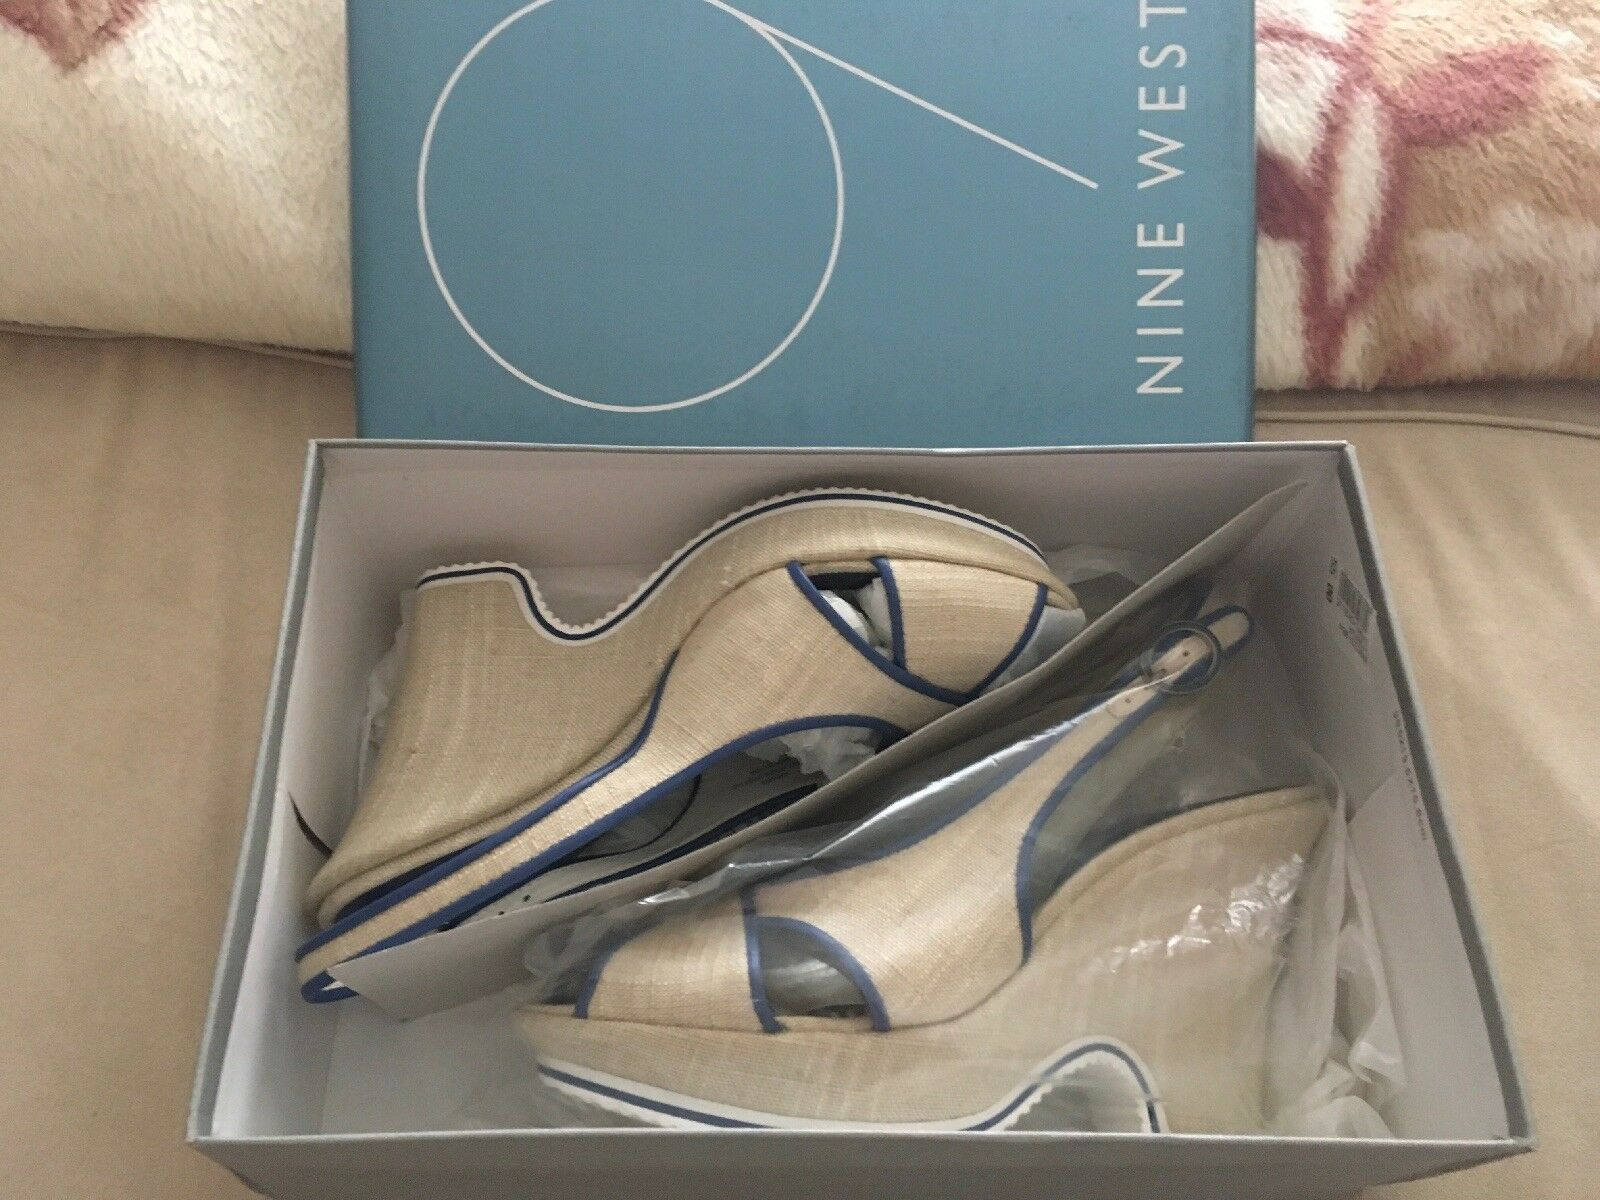 NINE WEST NWDARVA Gorgeous Canvas  Sandales UK6(US8) Schuhes Heels Ivory/Blau Größe UK6(US8) Sandales 6a179c